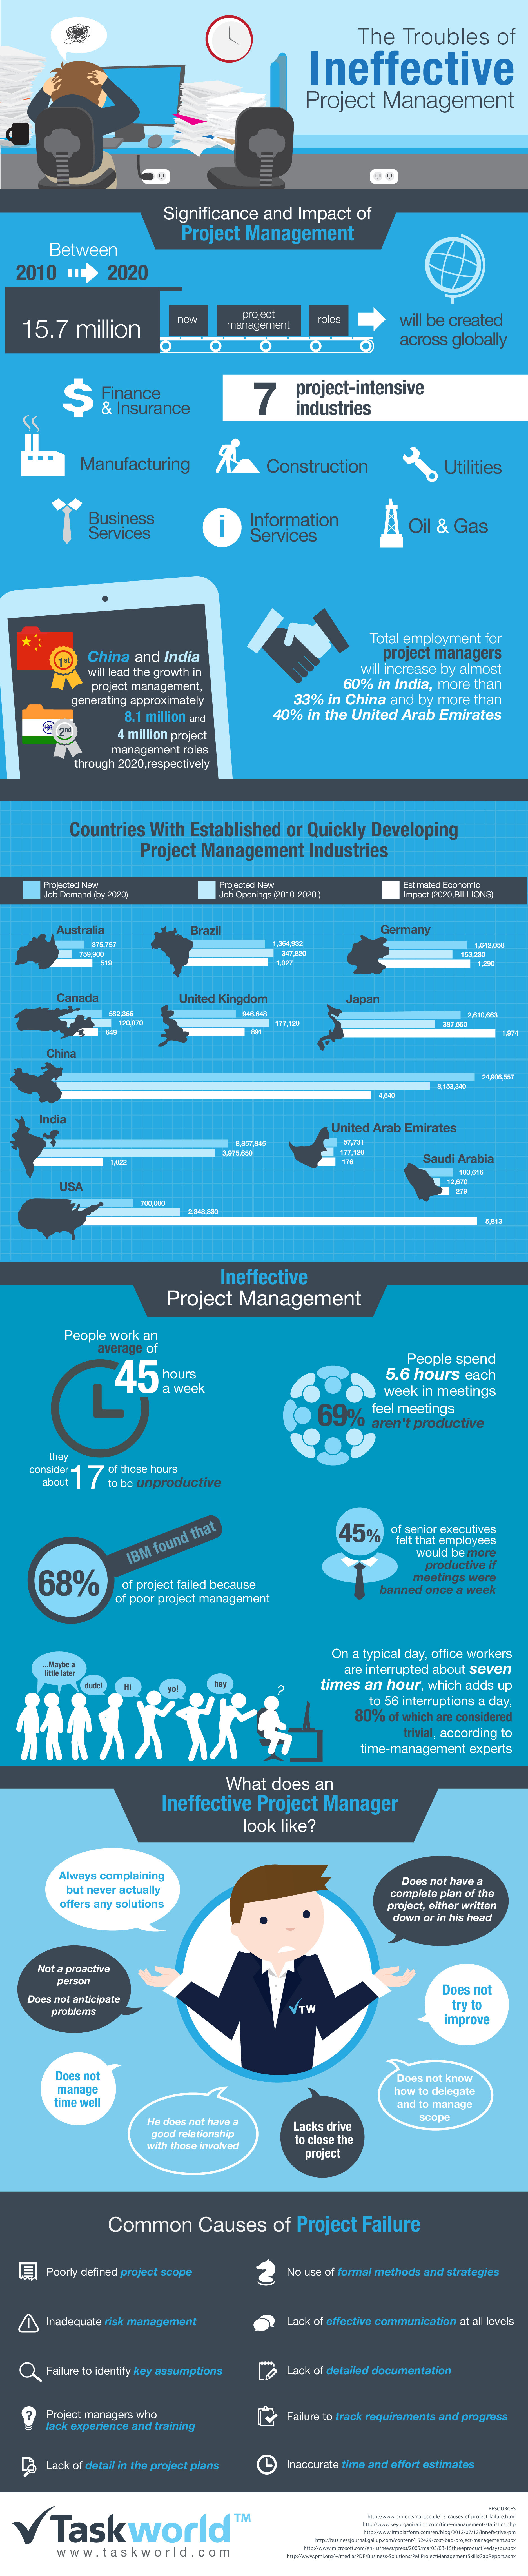 Infographic: The Troubles of Ineffective Project Management